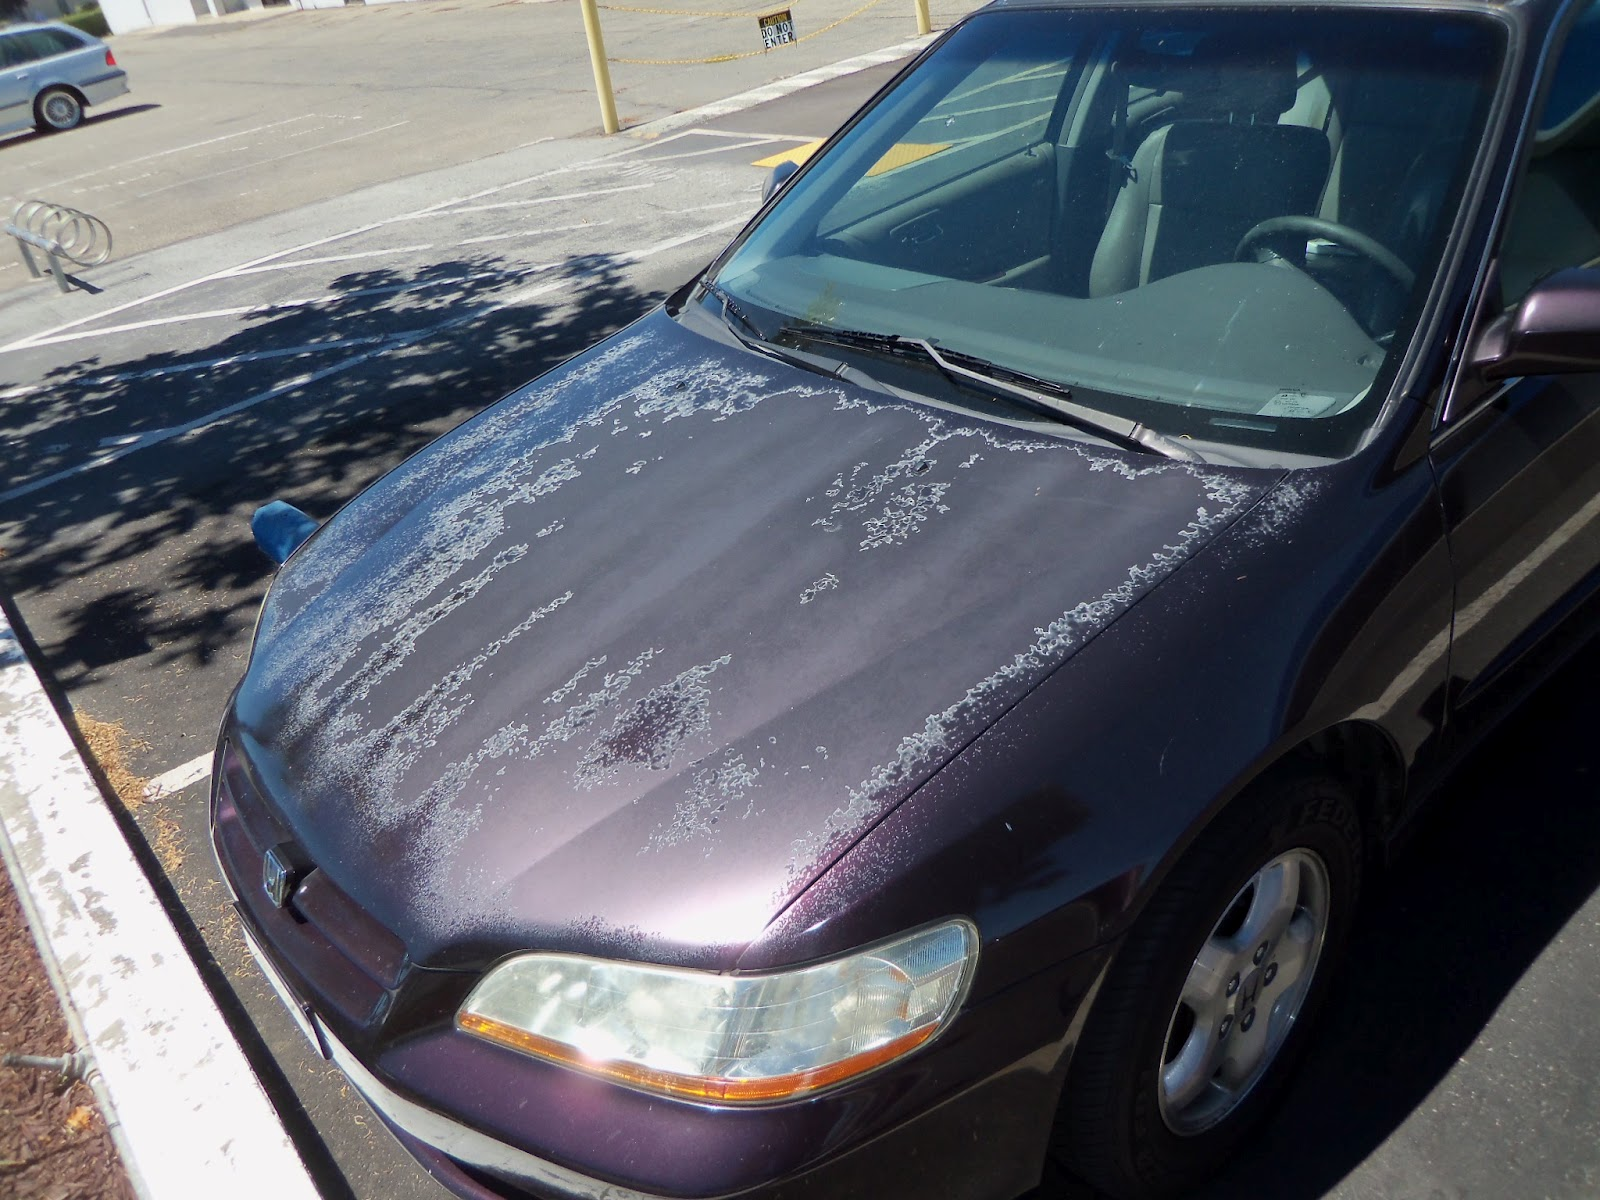 Typical car with fading, peeling clear coat and paint (delaminating paint)